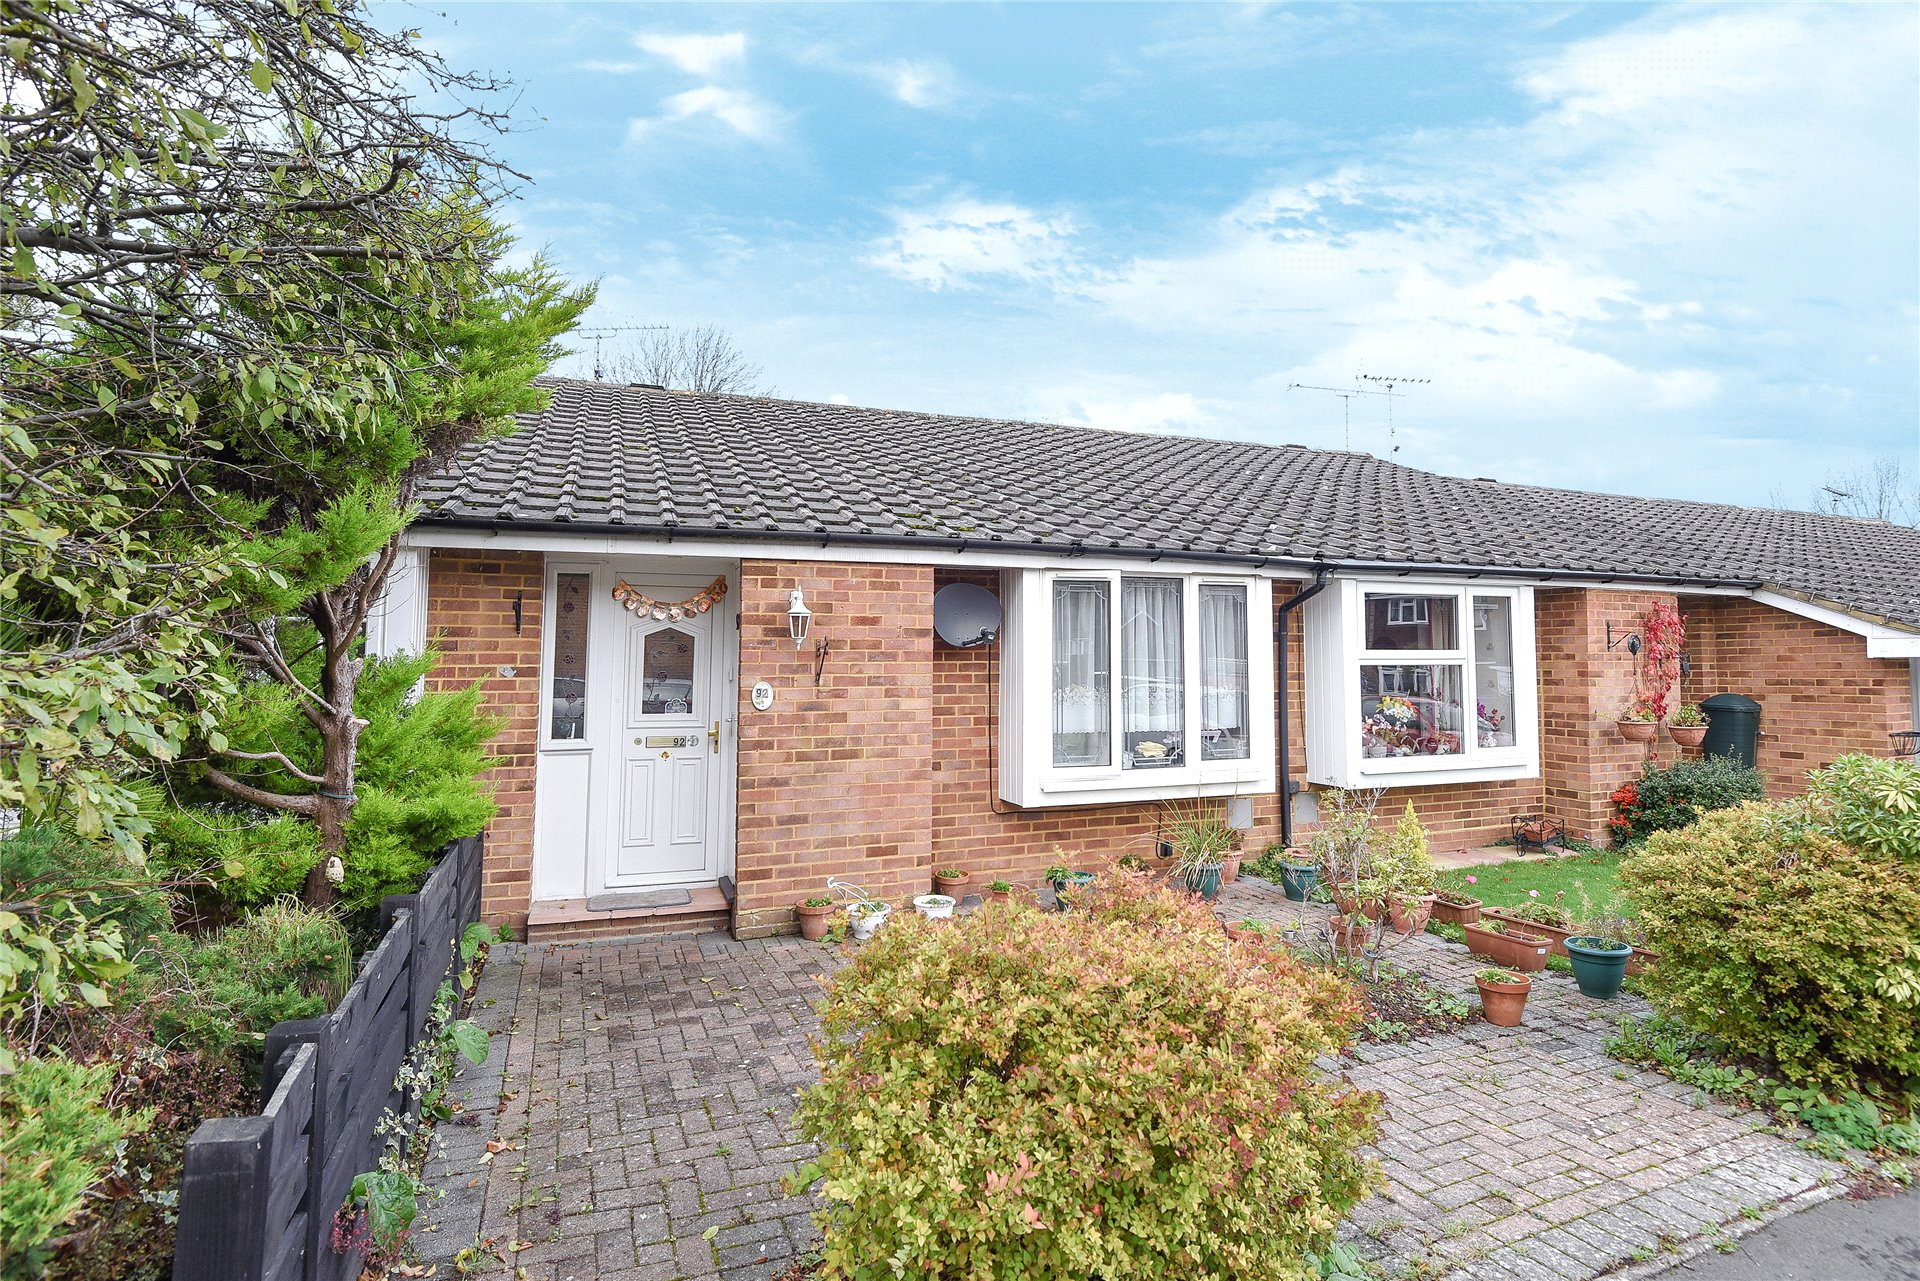 2 Bedrooms Terraced Bungalow for sale in Knightswood, Bracknell, Berkshire, RG12